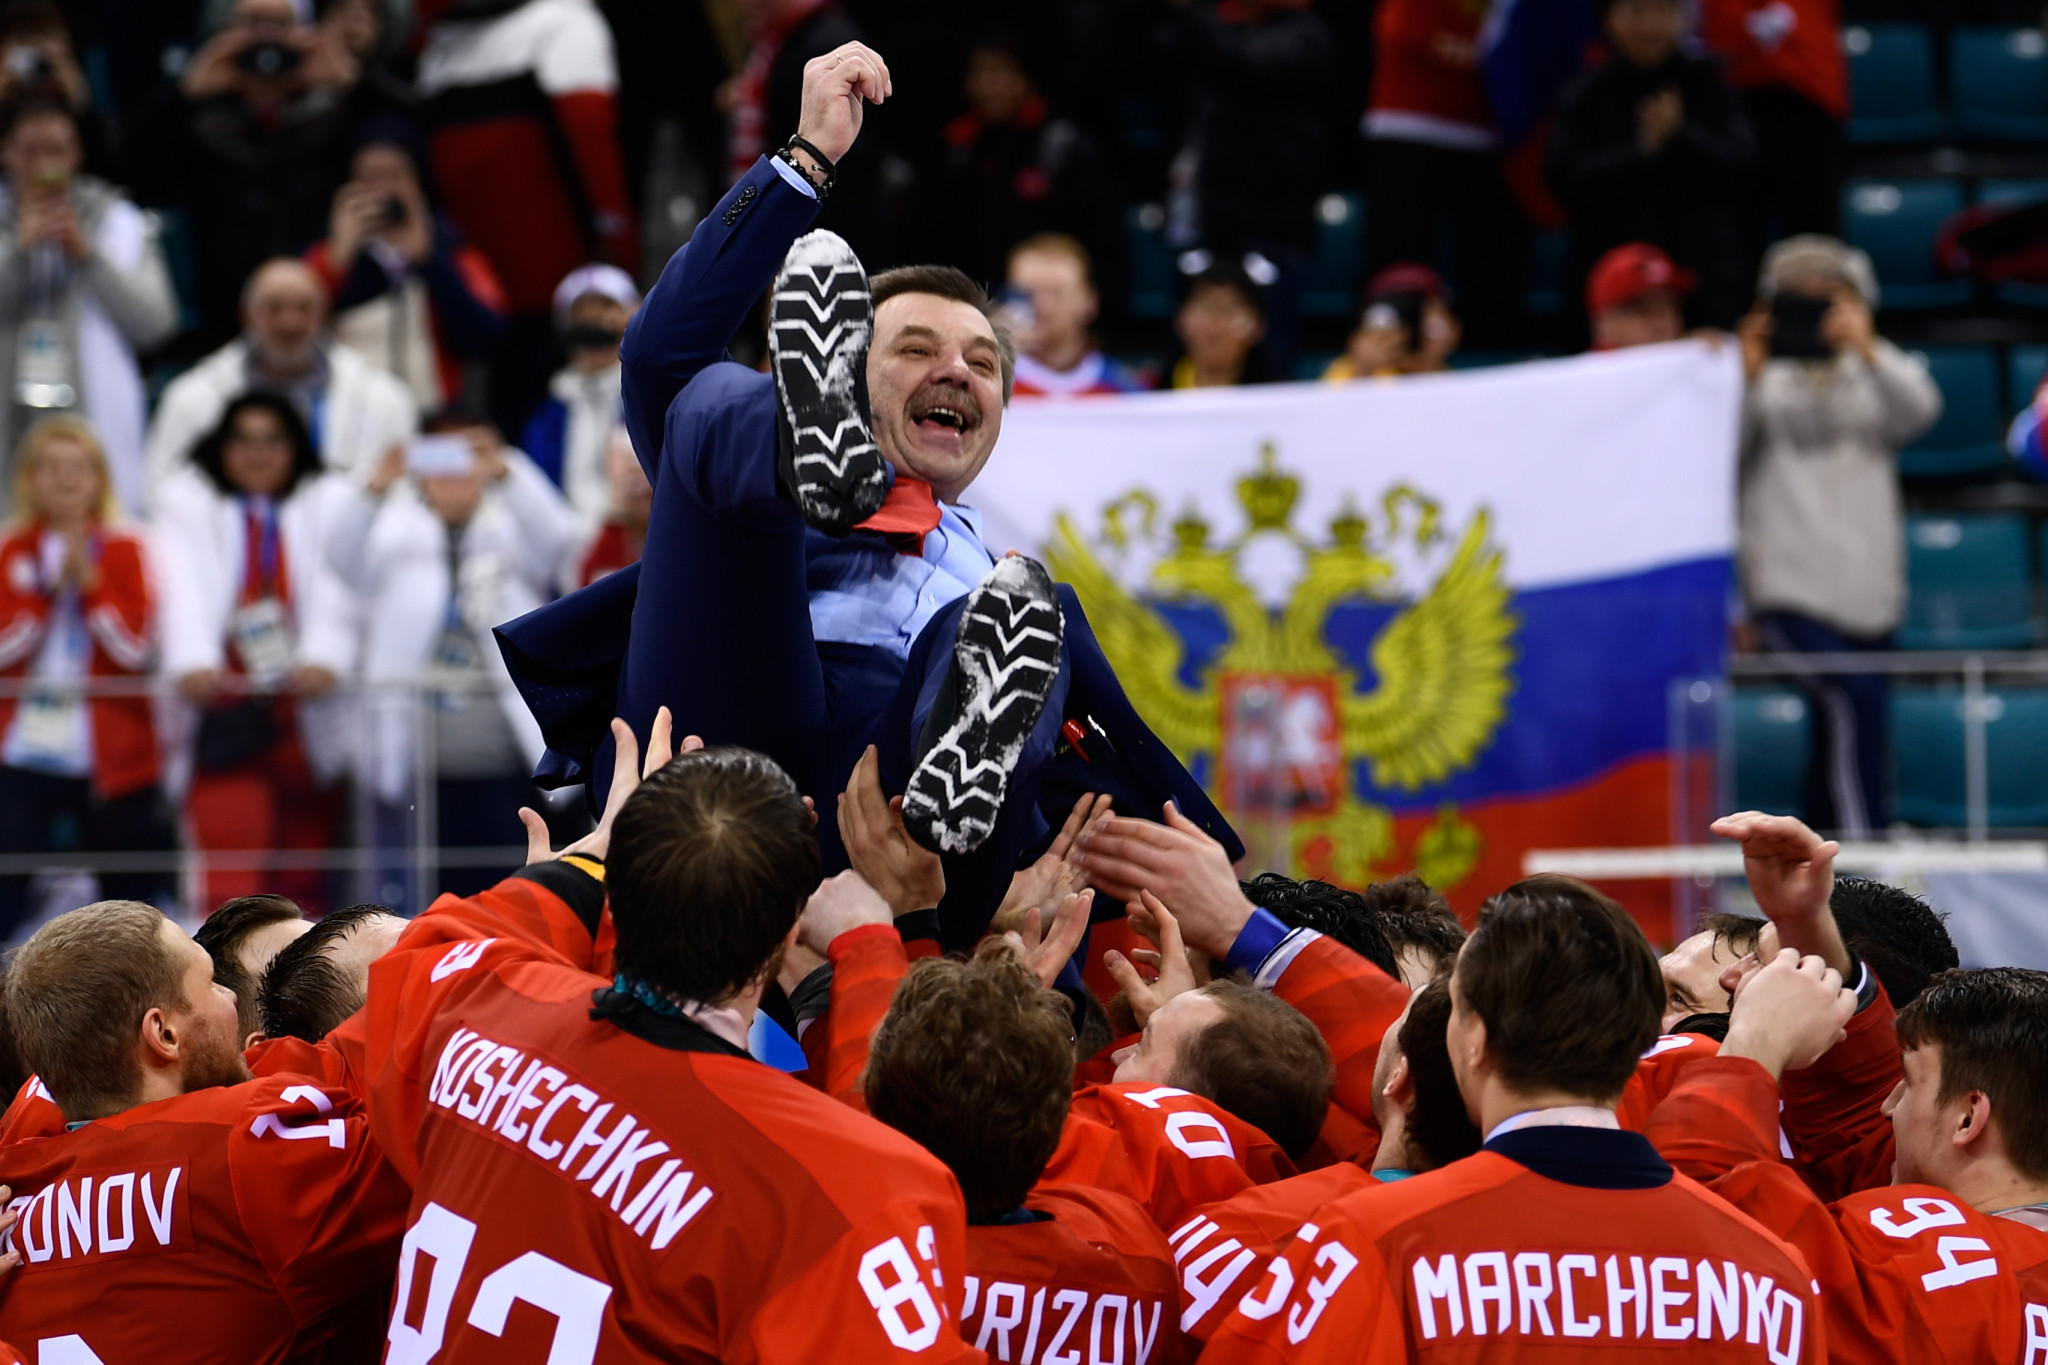 Oleg Znarok guided the Olympic Athletes from Russia to the men's ice hockey gold medal at Pyeongchang 2018 ©Getty Images